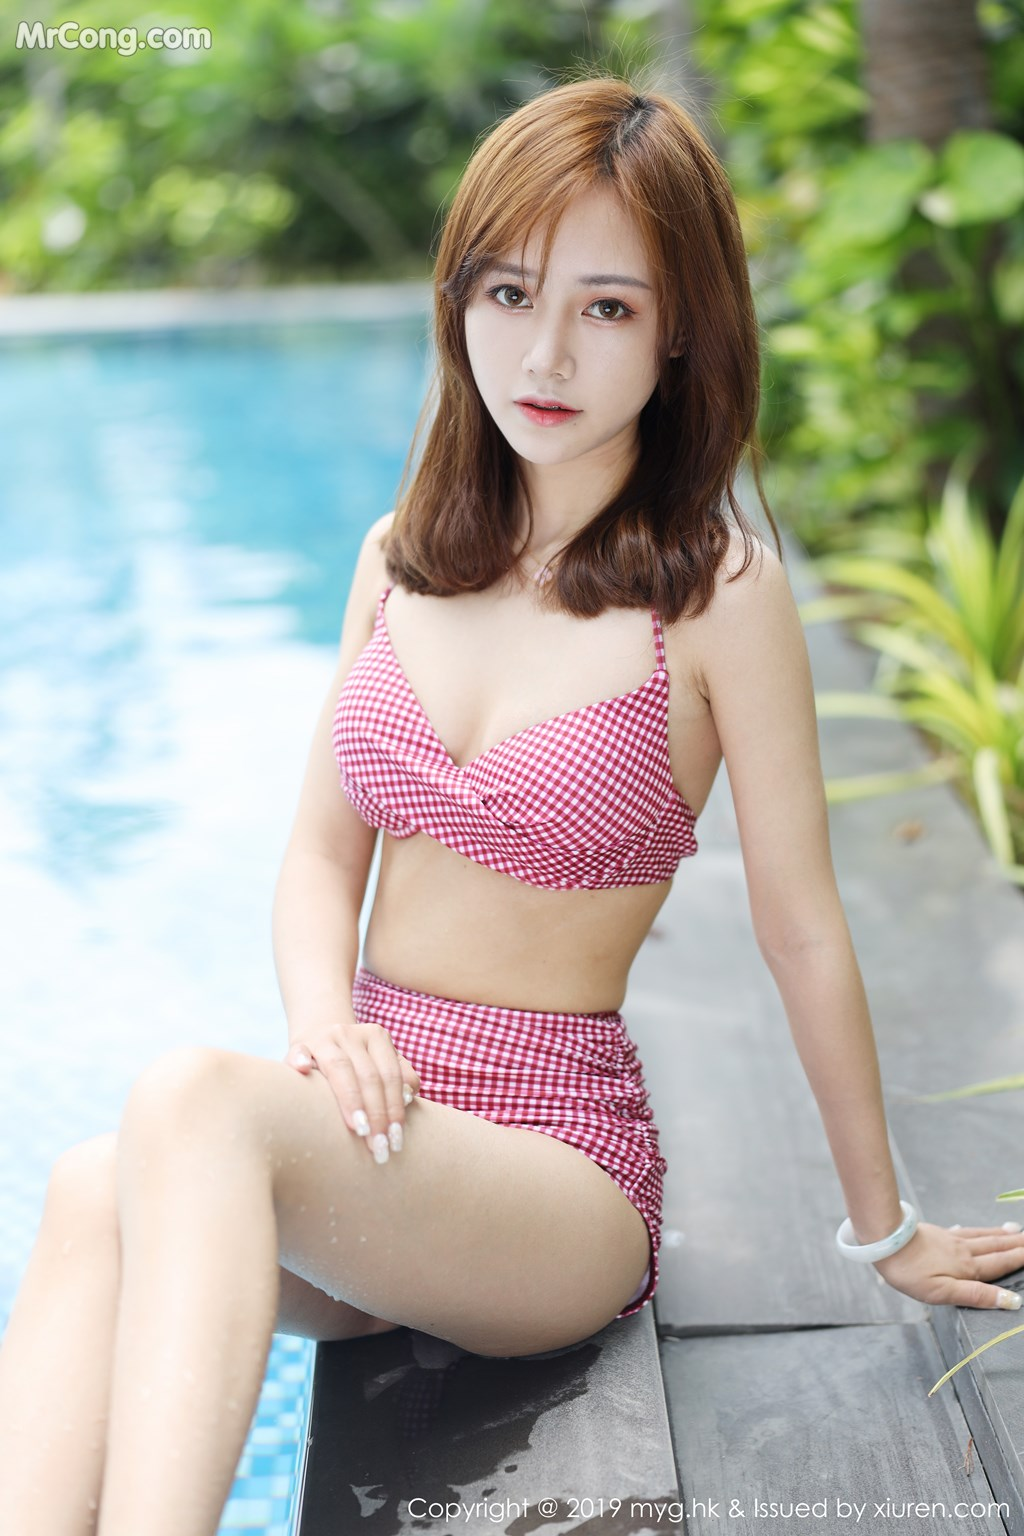 Image MyGirl-Vol.356-real-MrCong.com-008 in post MyGirl Vol.356: 羽住real (55 ảnh)